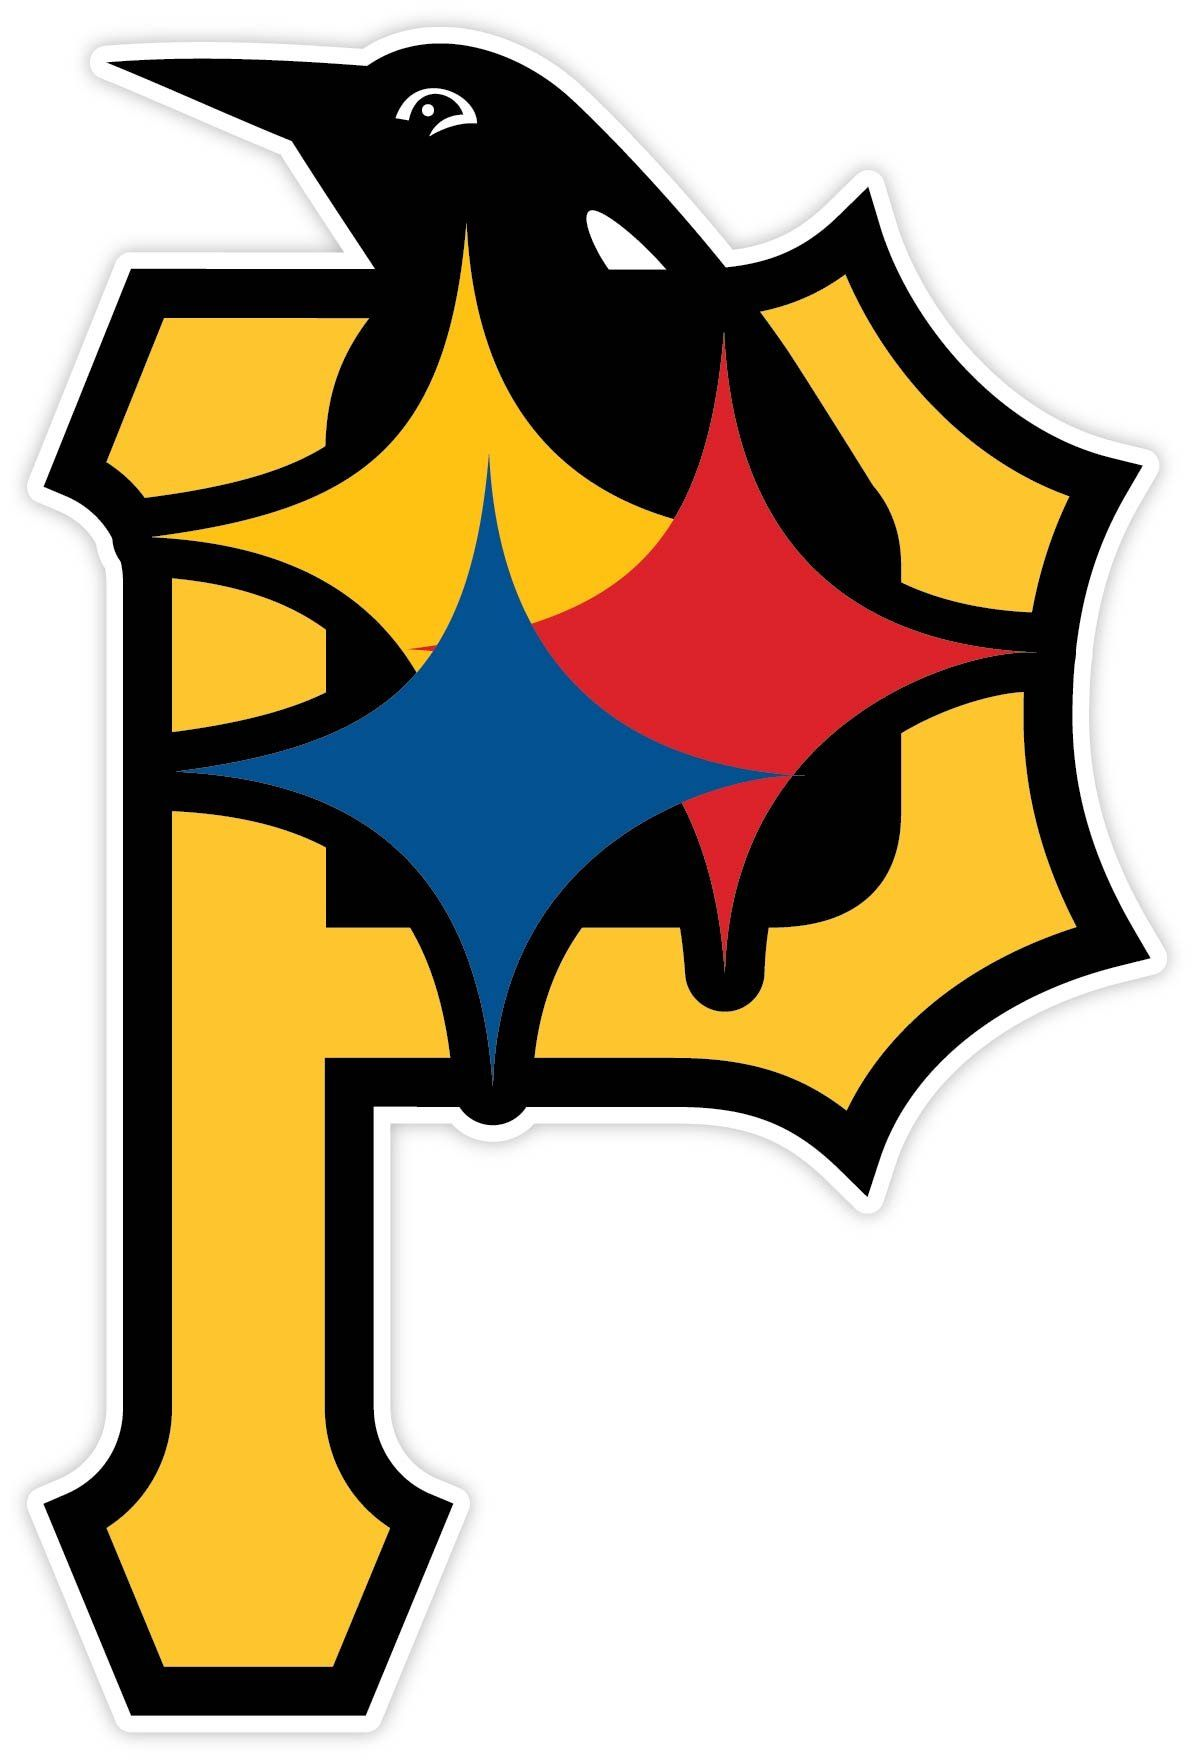 1195x1760 Pittsburgh Fan Sport Logo 4x5.5 Sticker Decal Vinyl Steelers